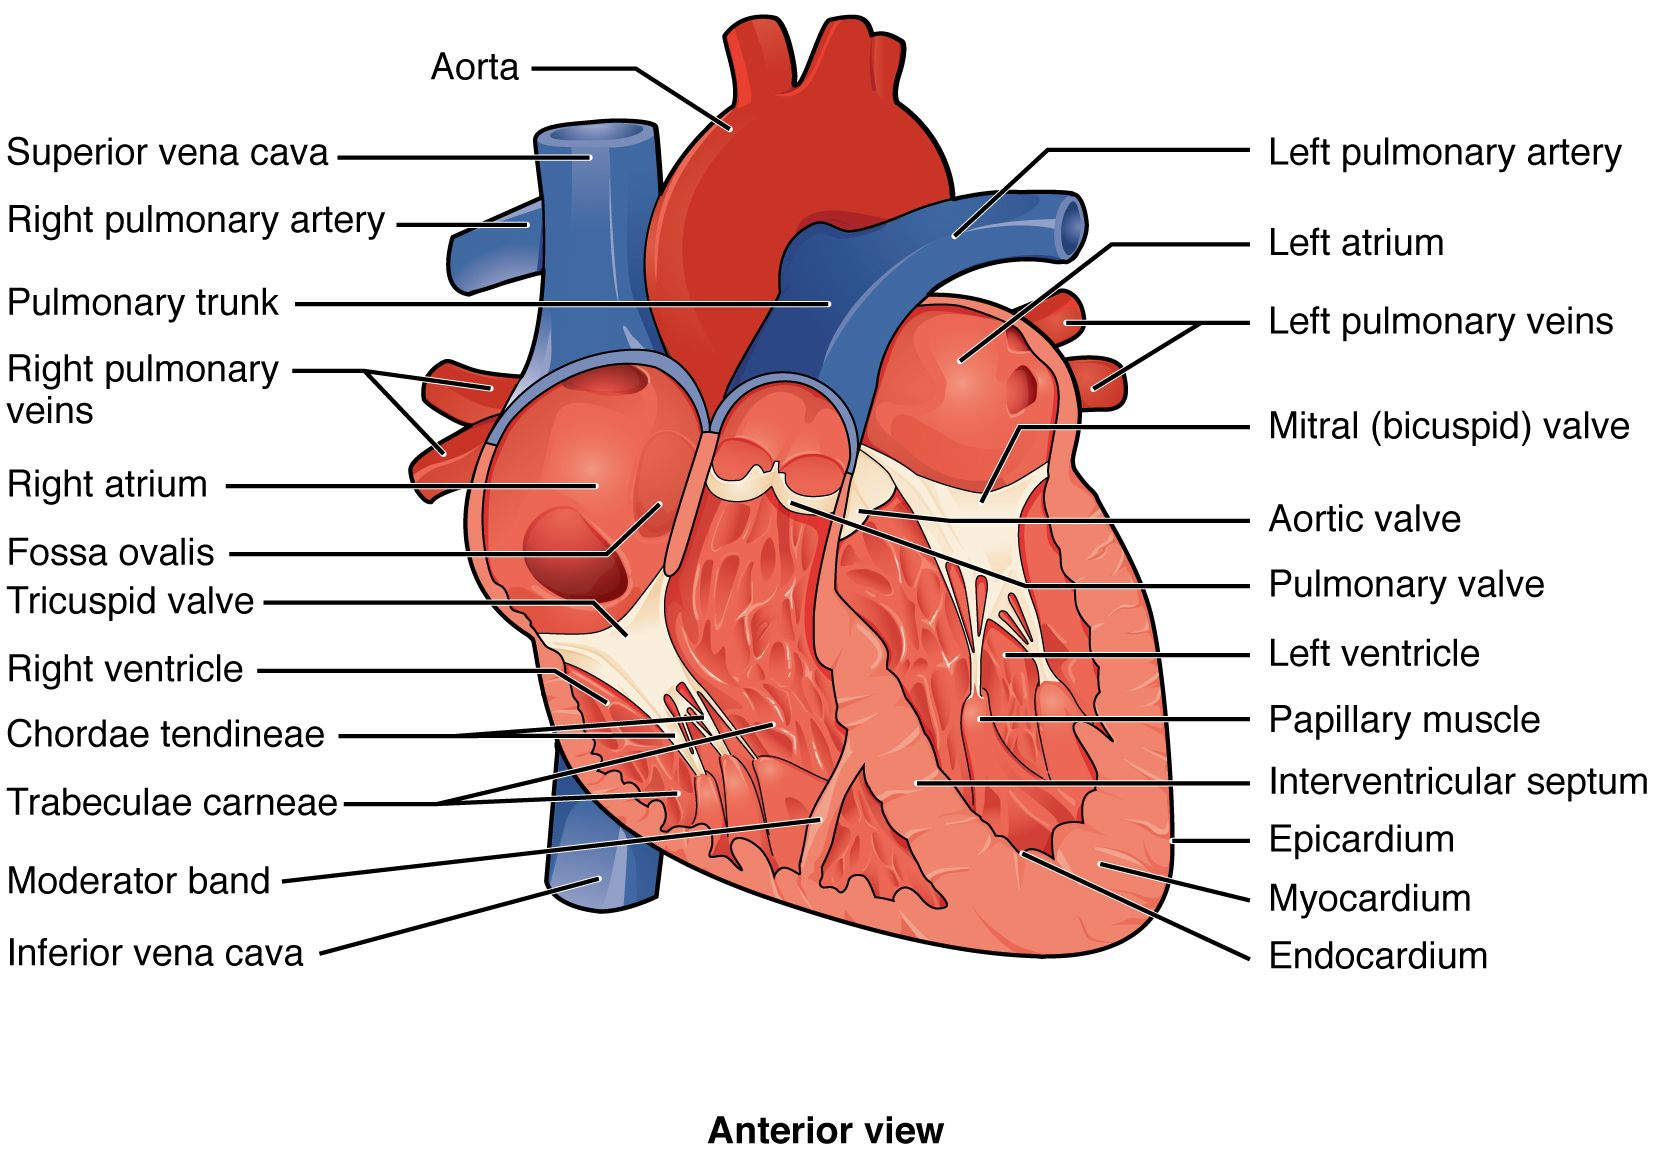 Diagram Of The Heart Labeled Structure Of The Human Heart Labeled Heart Diagram With Labels Cardiac Anatomy Heart Anatomy Heart Diagram